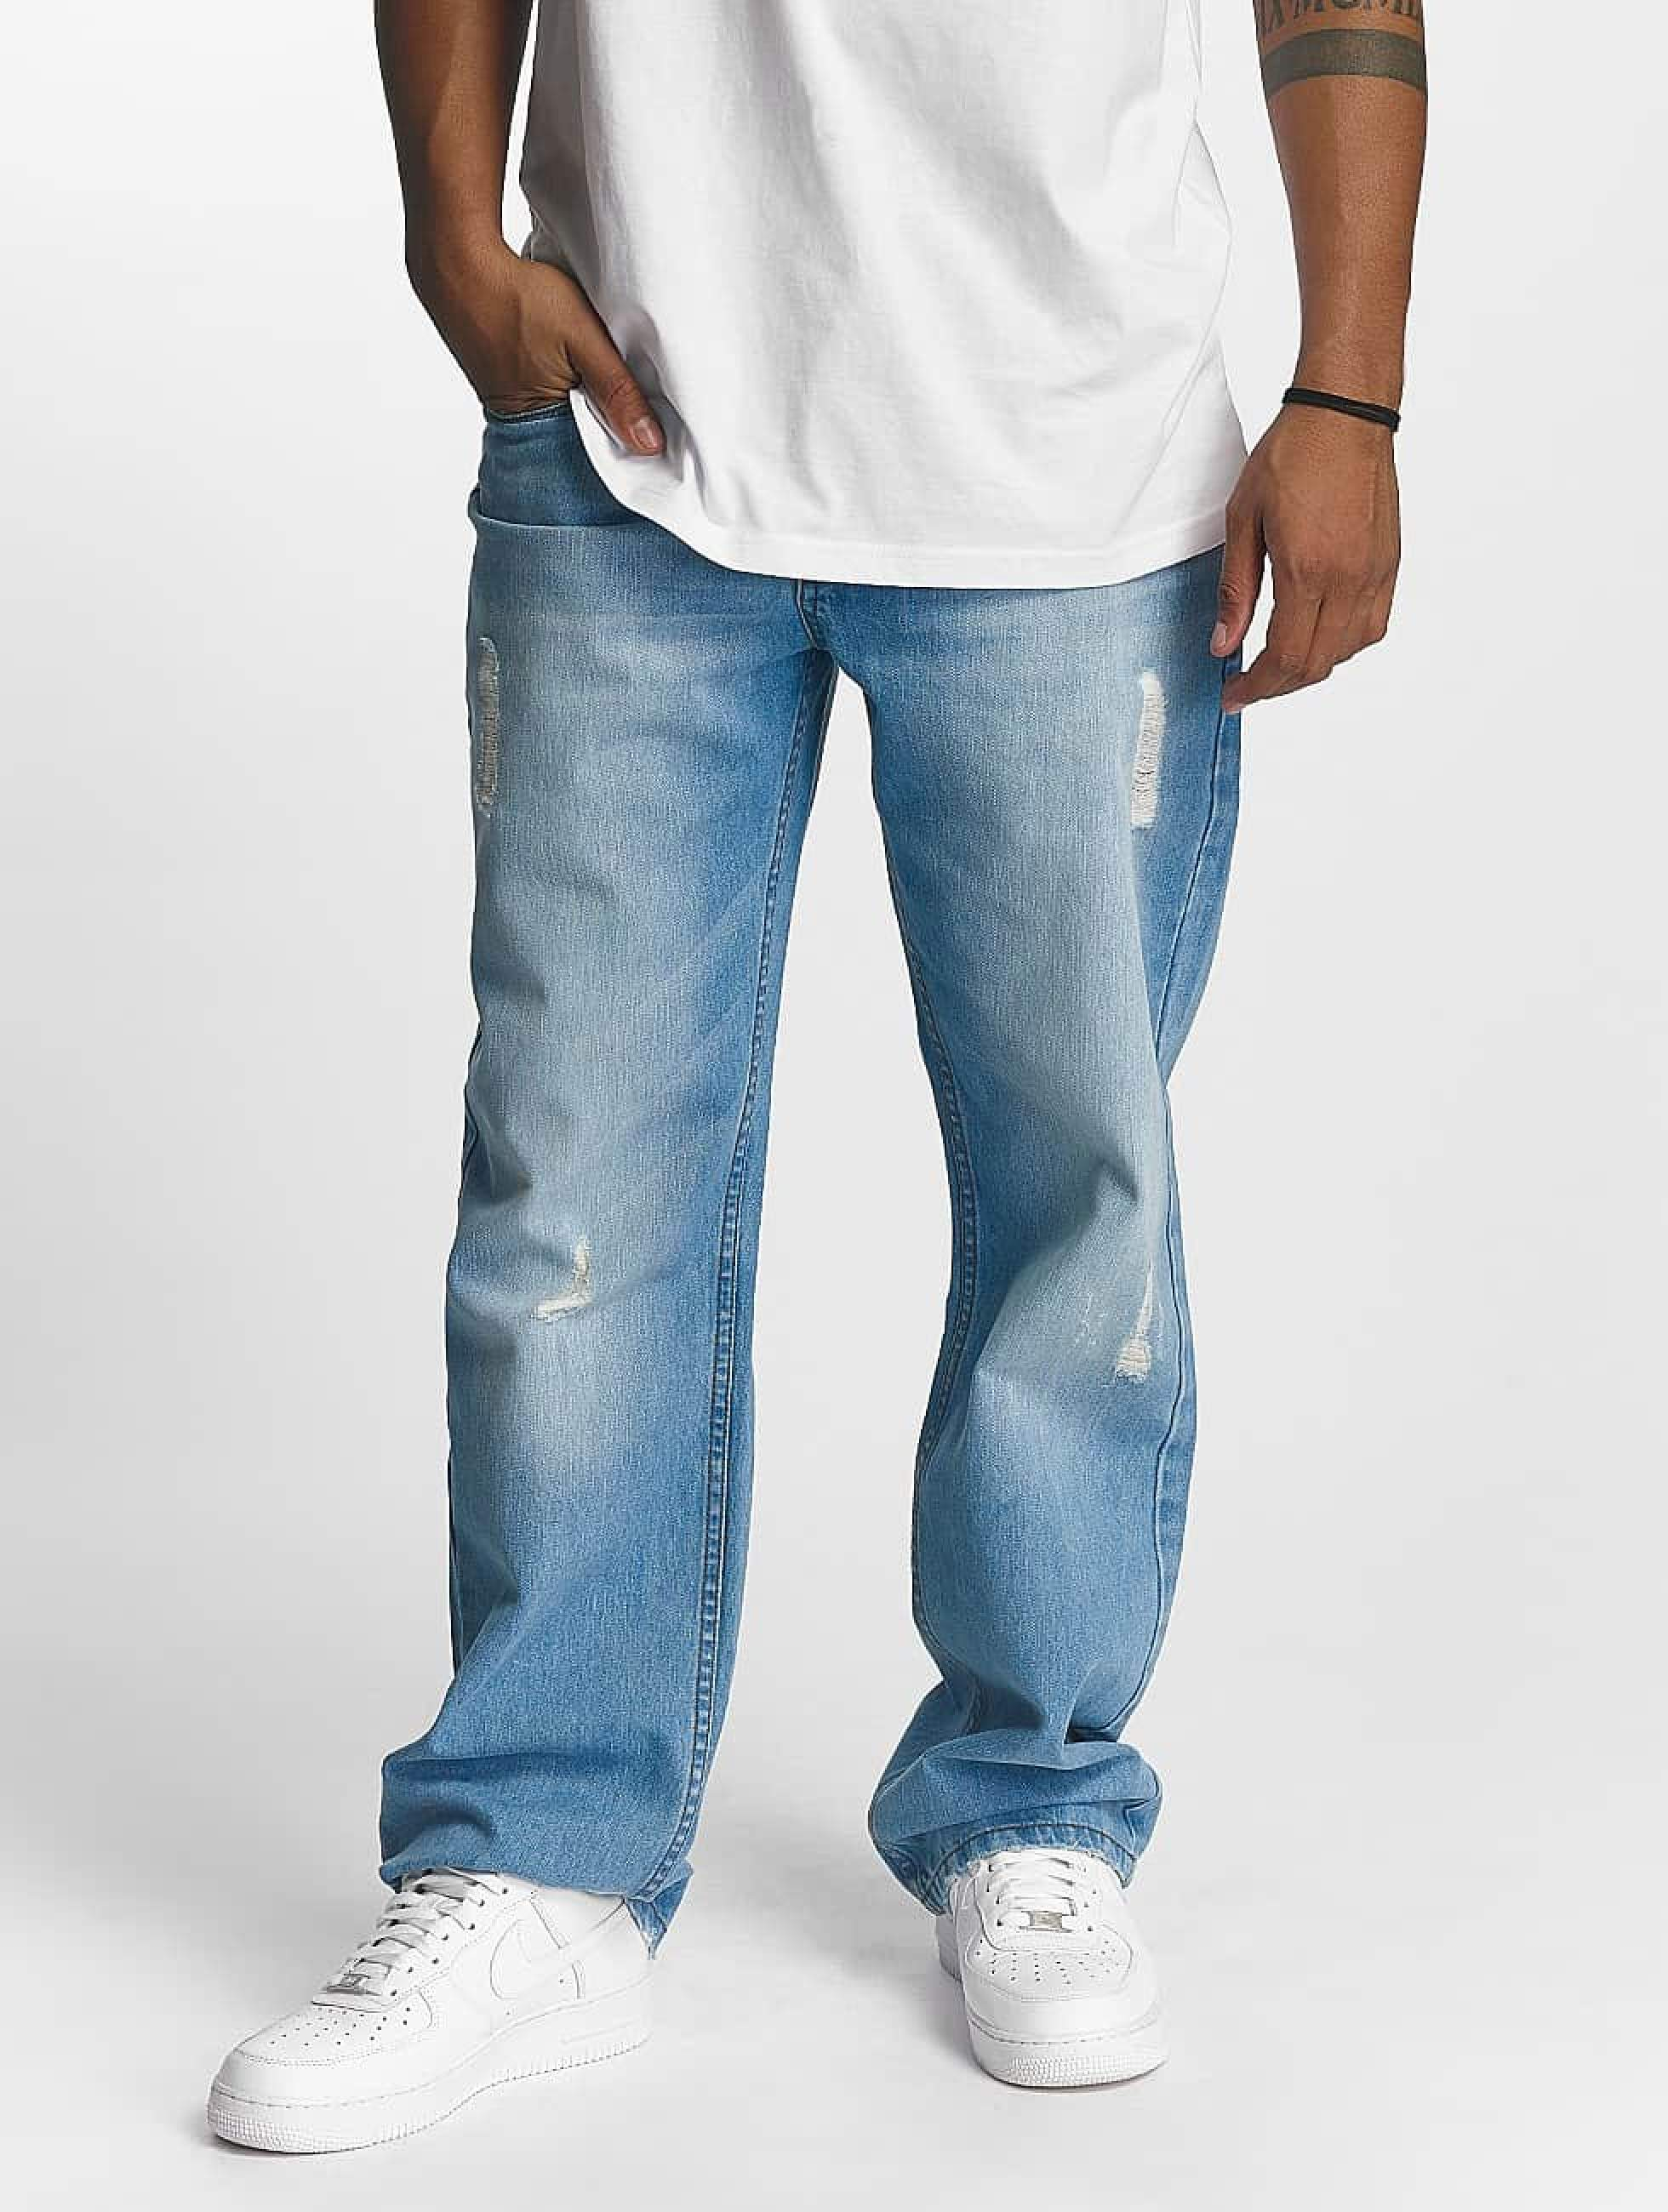 Rocawear / Loose Fit Jeans Loose Fit in blue W 40